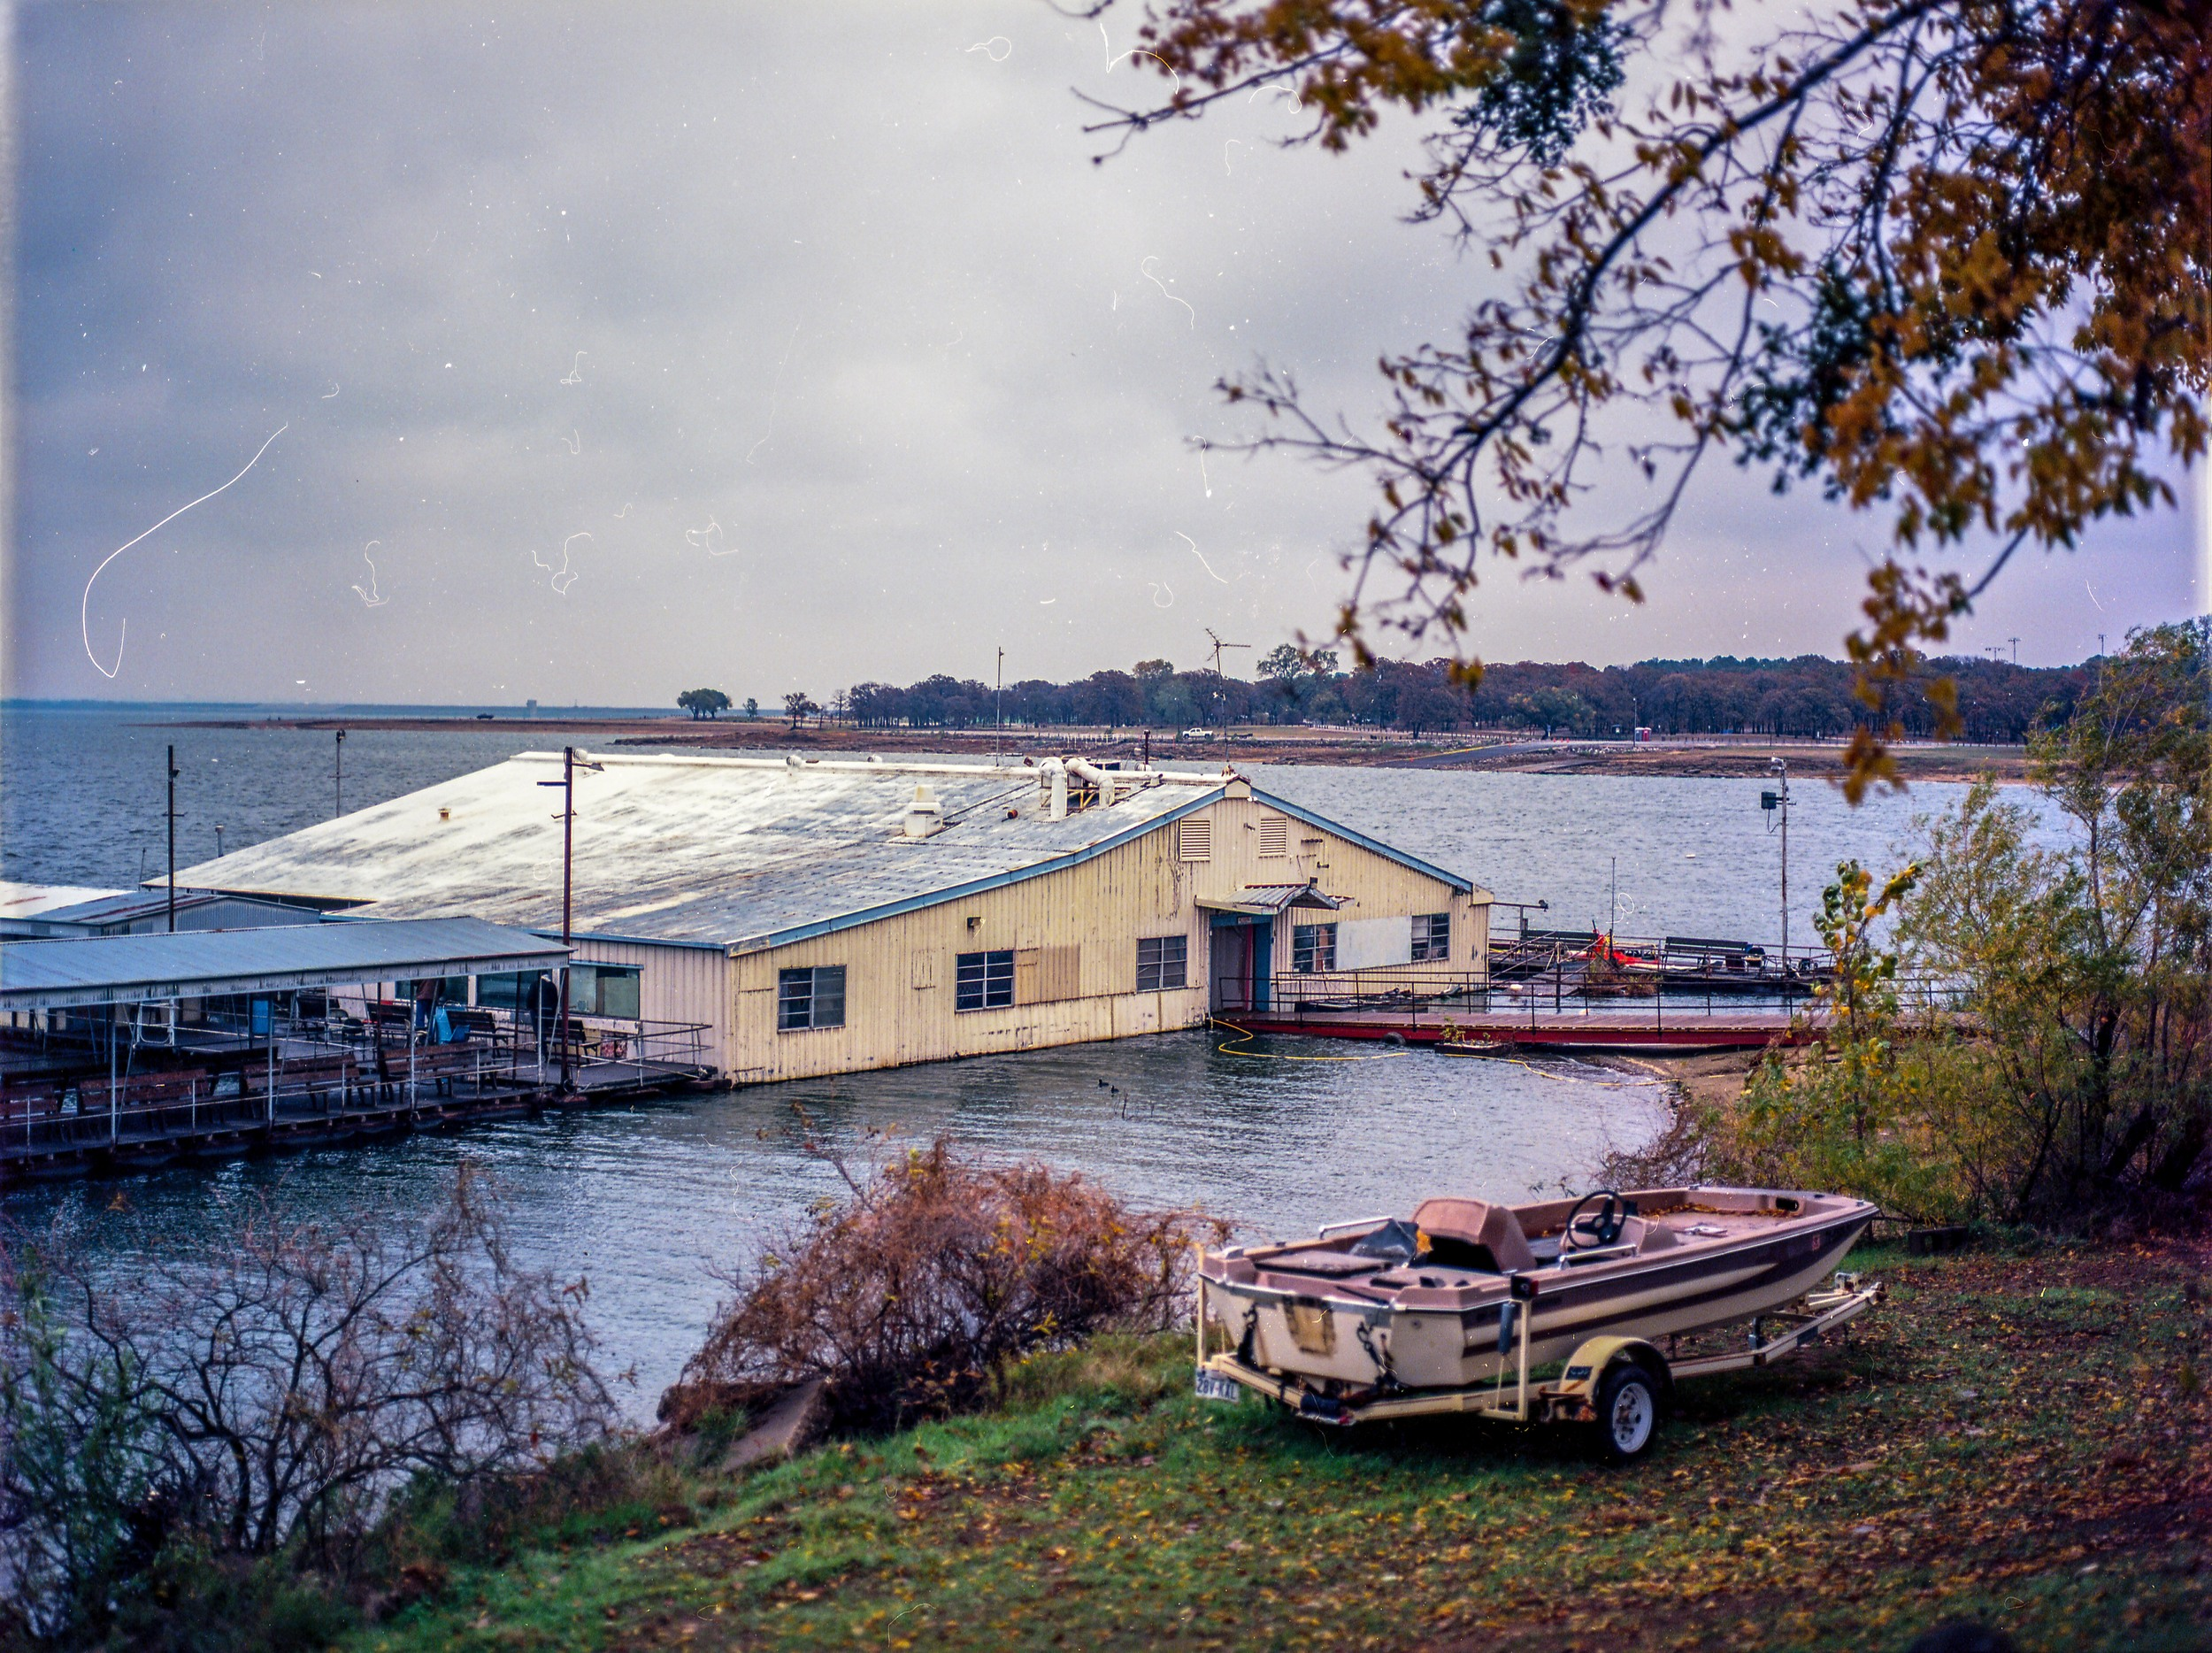 Last time I came to the fishing barge, they told me I was no longer allowed to bring my camera. I was pretty bummed. I'm going to the bring some images i've shot there to the owner the next time I go.